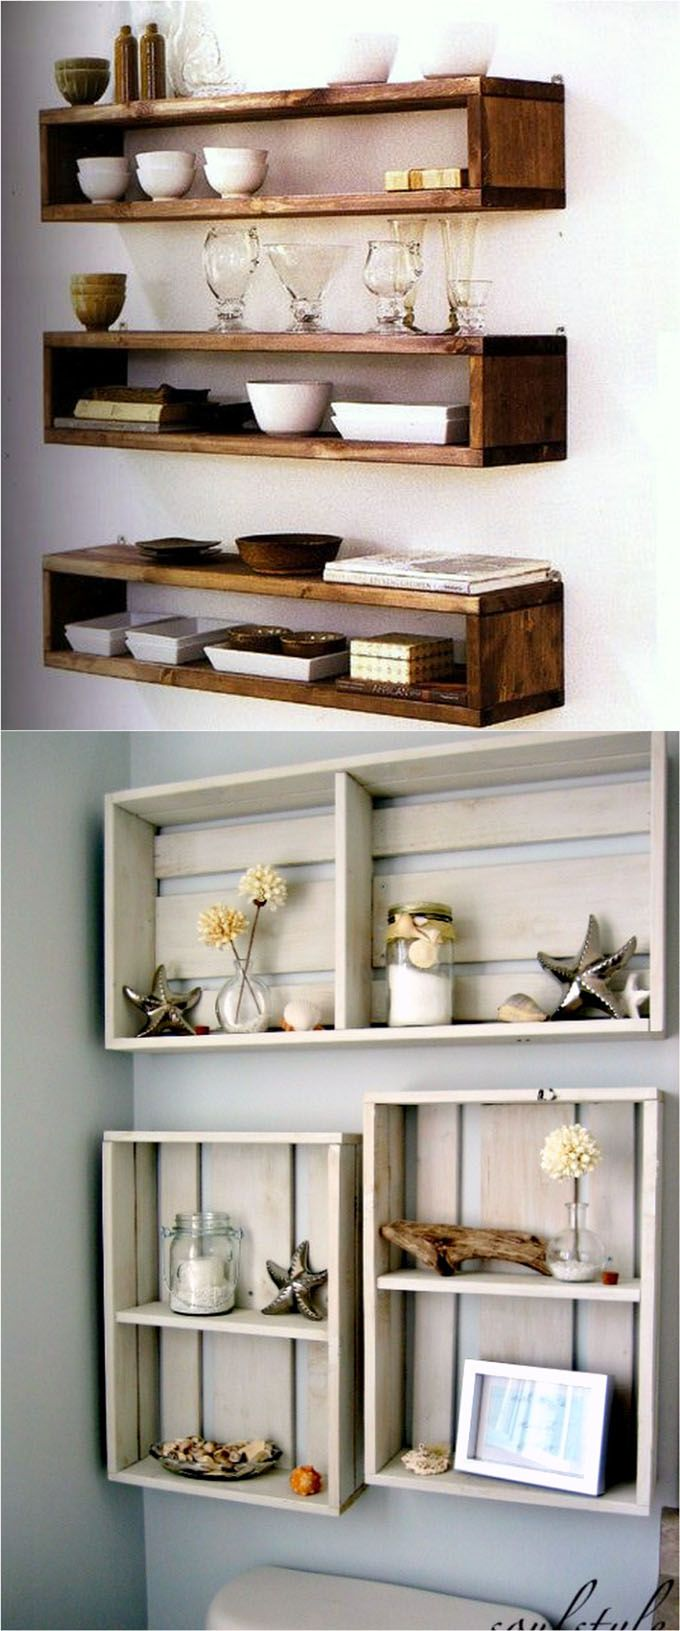 16 easy tutorials on building beautiful floating shelves and wall shelves! Check…